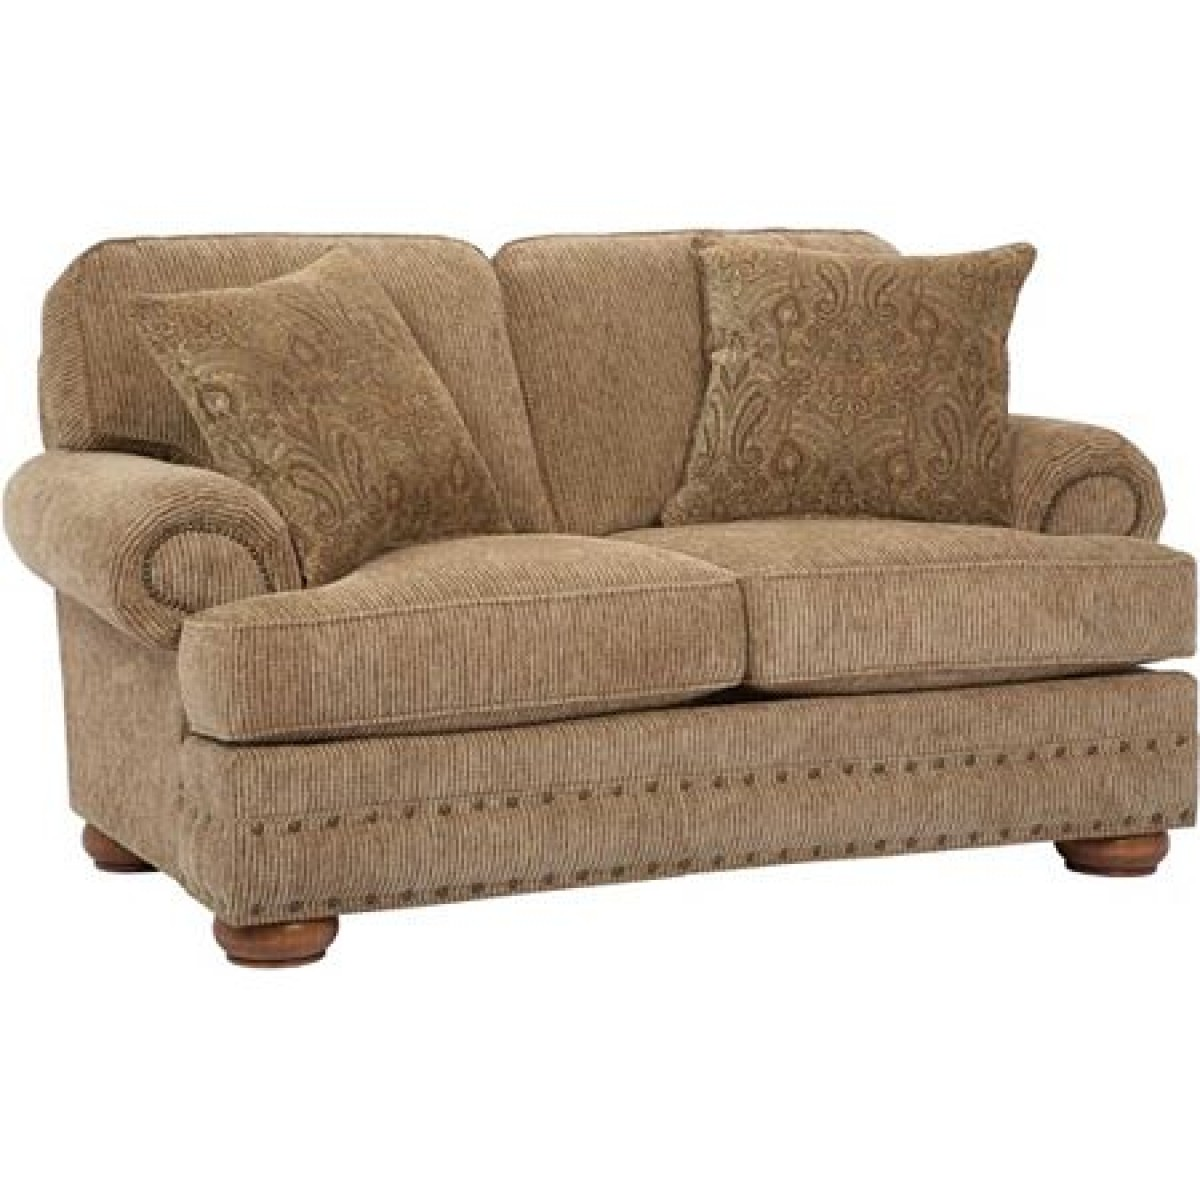 Give yourself the best rest and relaxation soft for Couch and loveseat